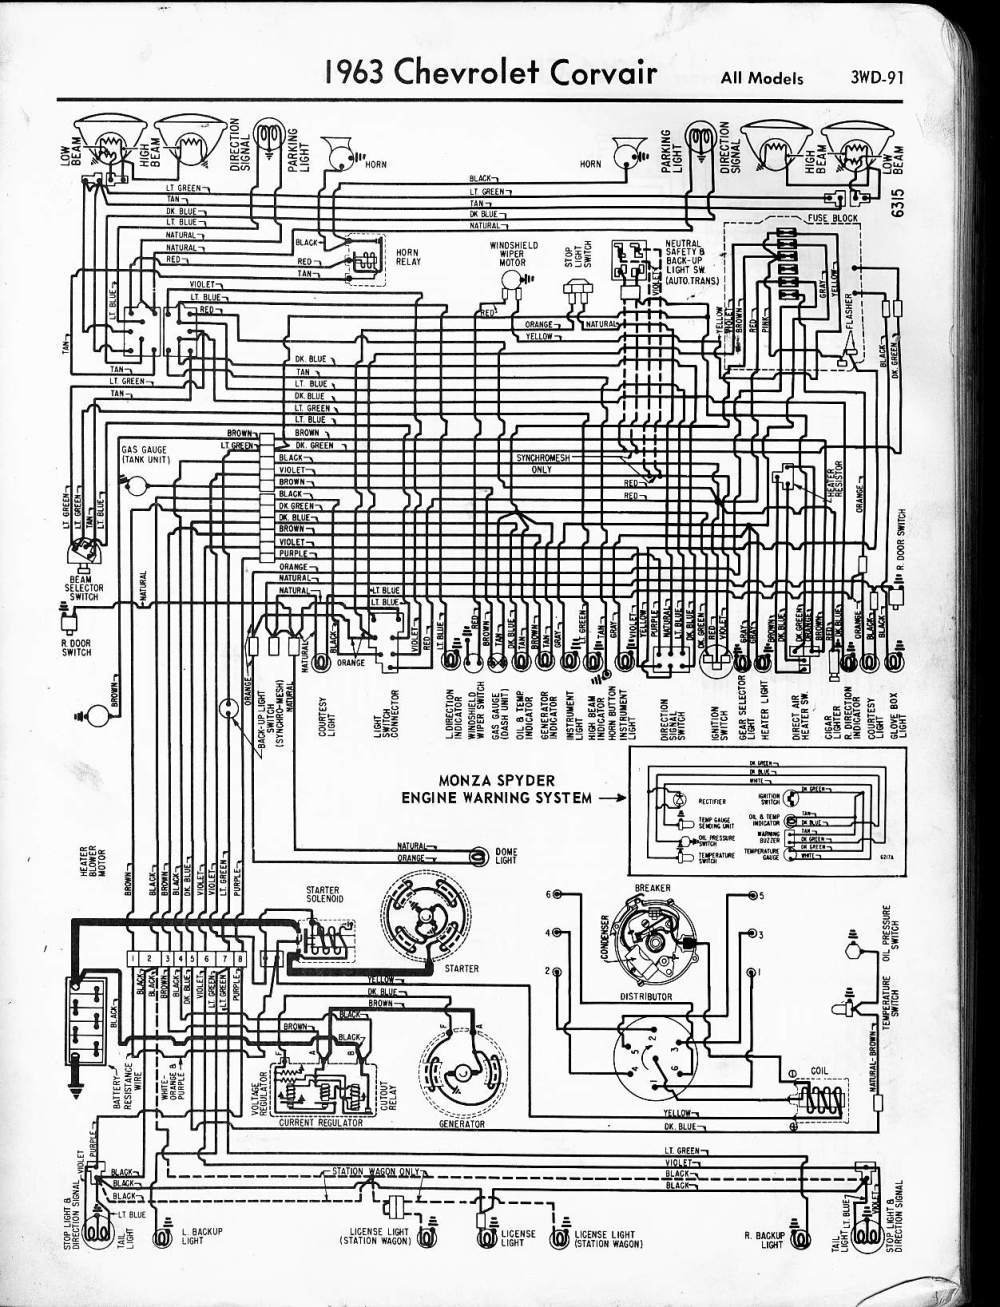 medium resolution of 1964 impala wiring diagram for ignition data wiring diagram schema 02 impala stereo wiring diagram 64 impala starter wiring diagram